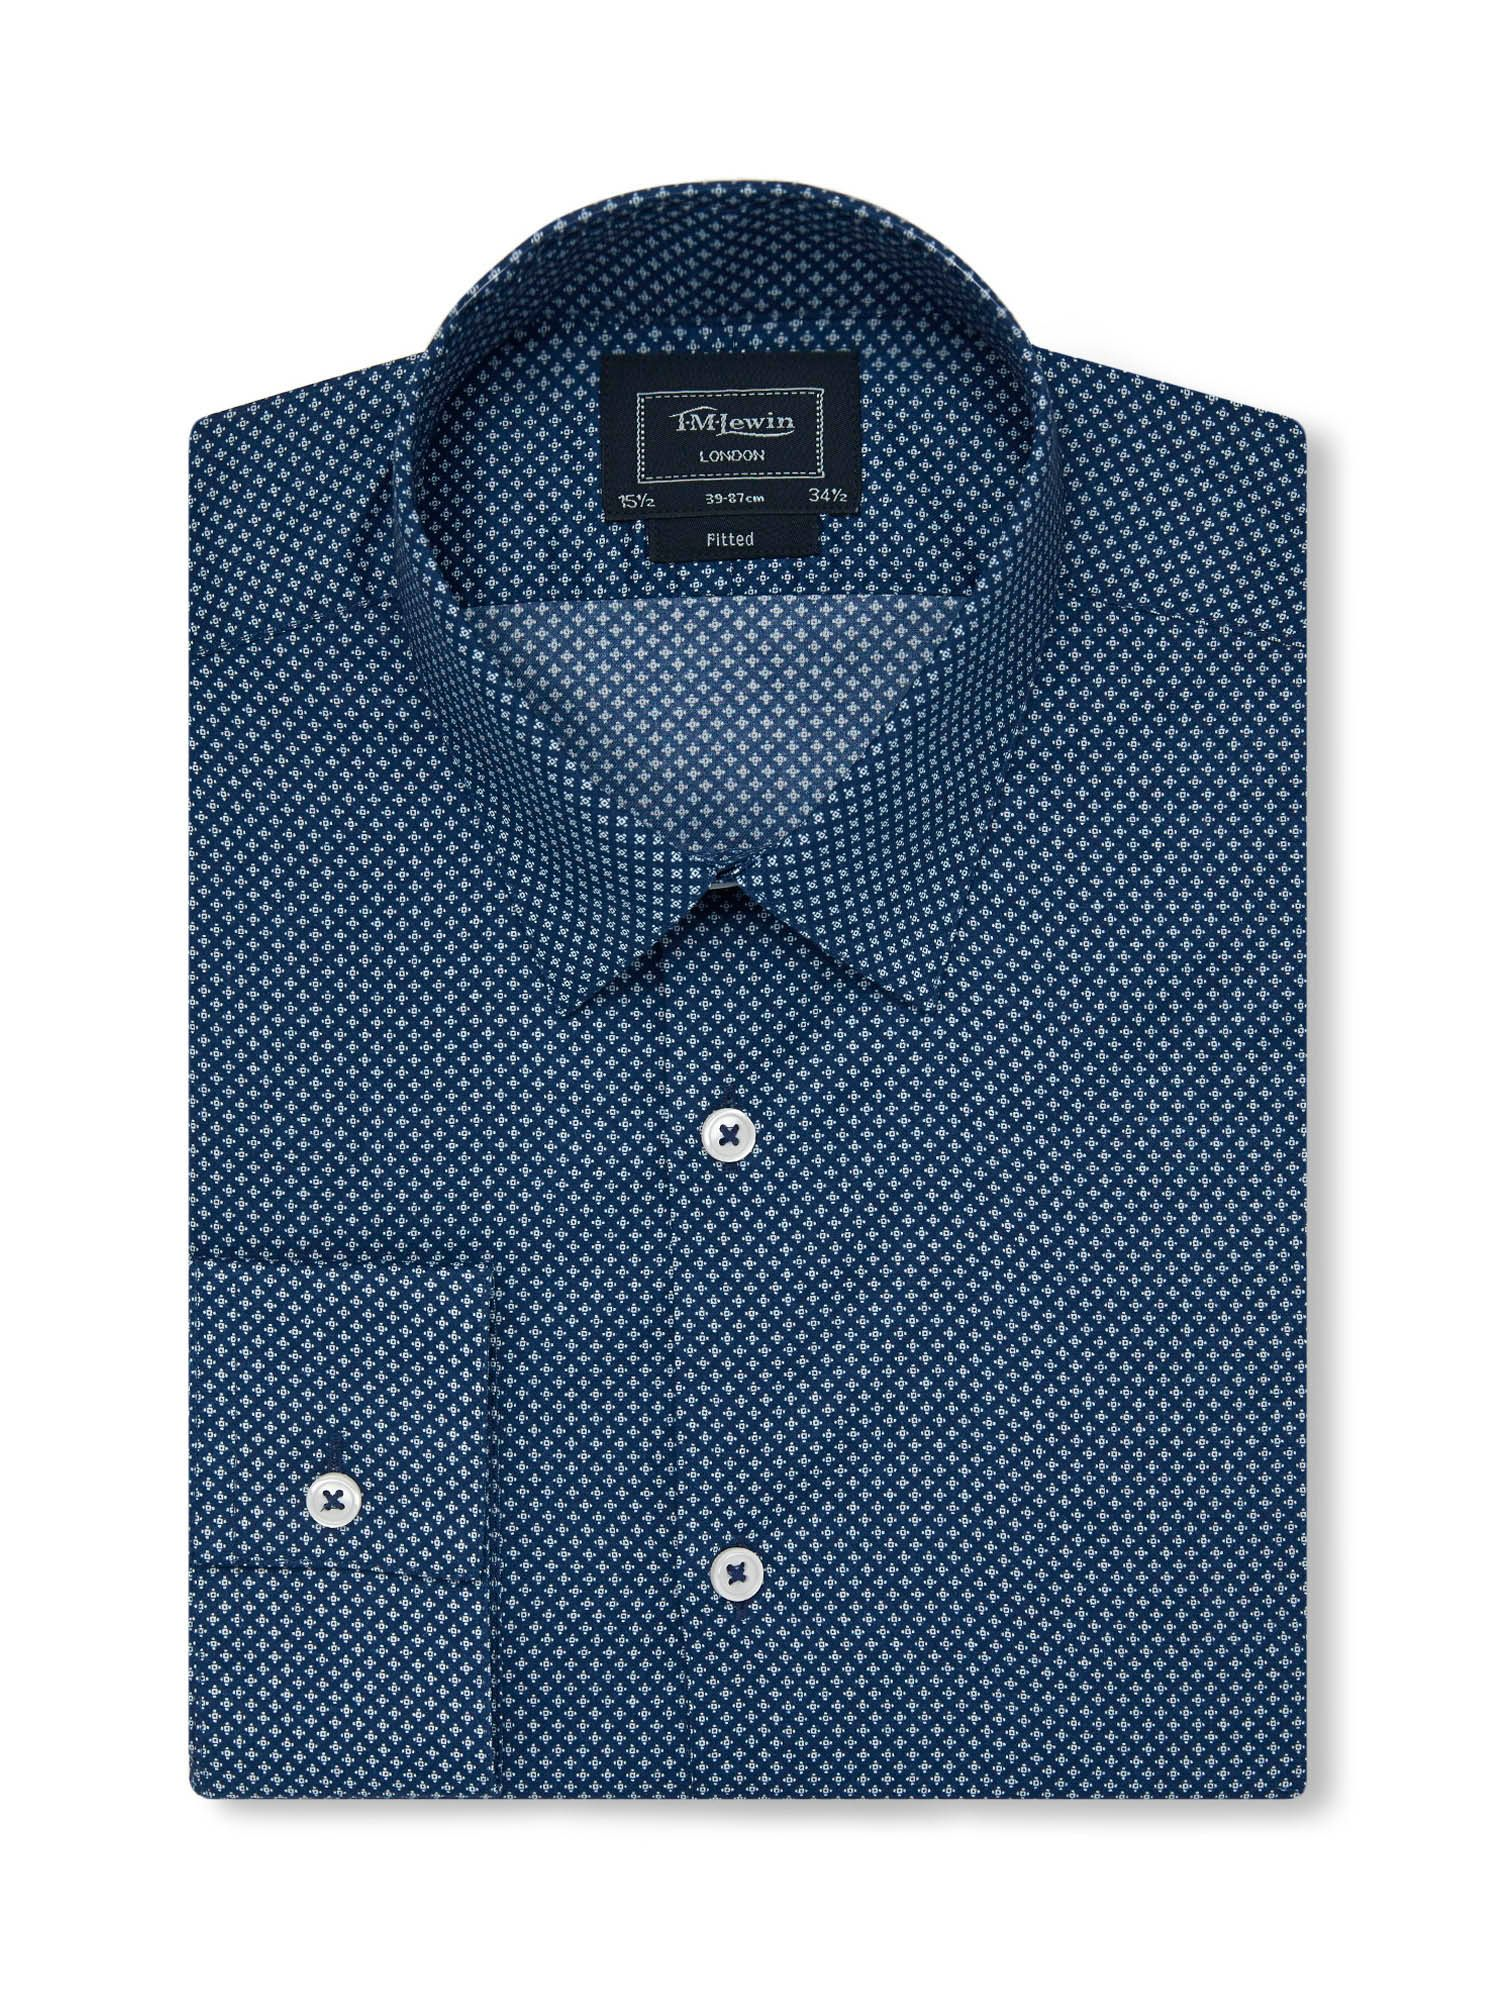 TM Lewin Men's TM Lewin Print Fully Fitted Classic Collar Formal Shirt, Navy